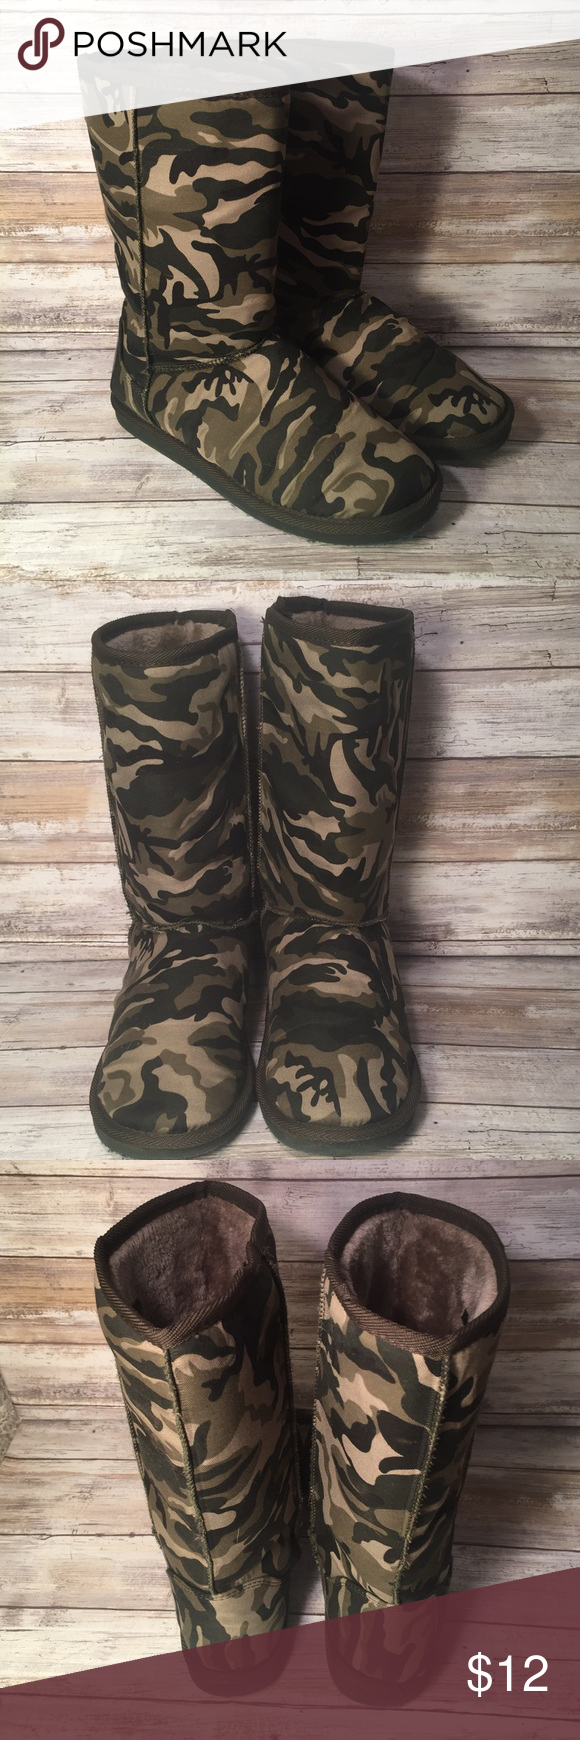 """12"""" camouflage boot w/ light olive faux fur lining 12"""" camouflage pull on boot with a thin layer of light olive green. Very lightweight boots. Worn a few times. Size 9 Shoes Winter & Rain Boots"""